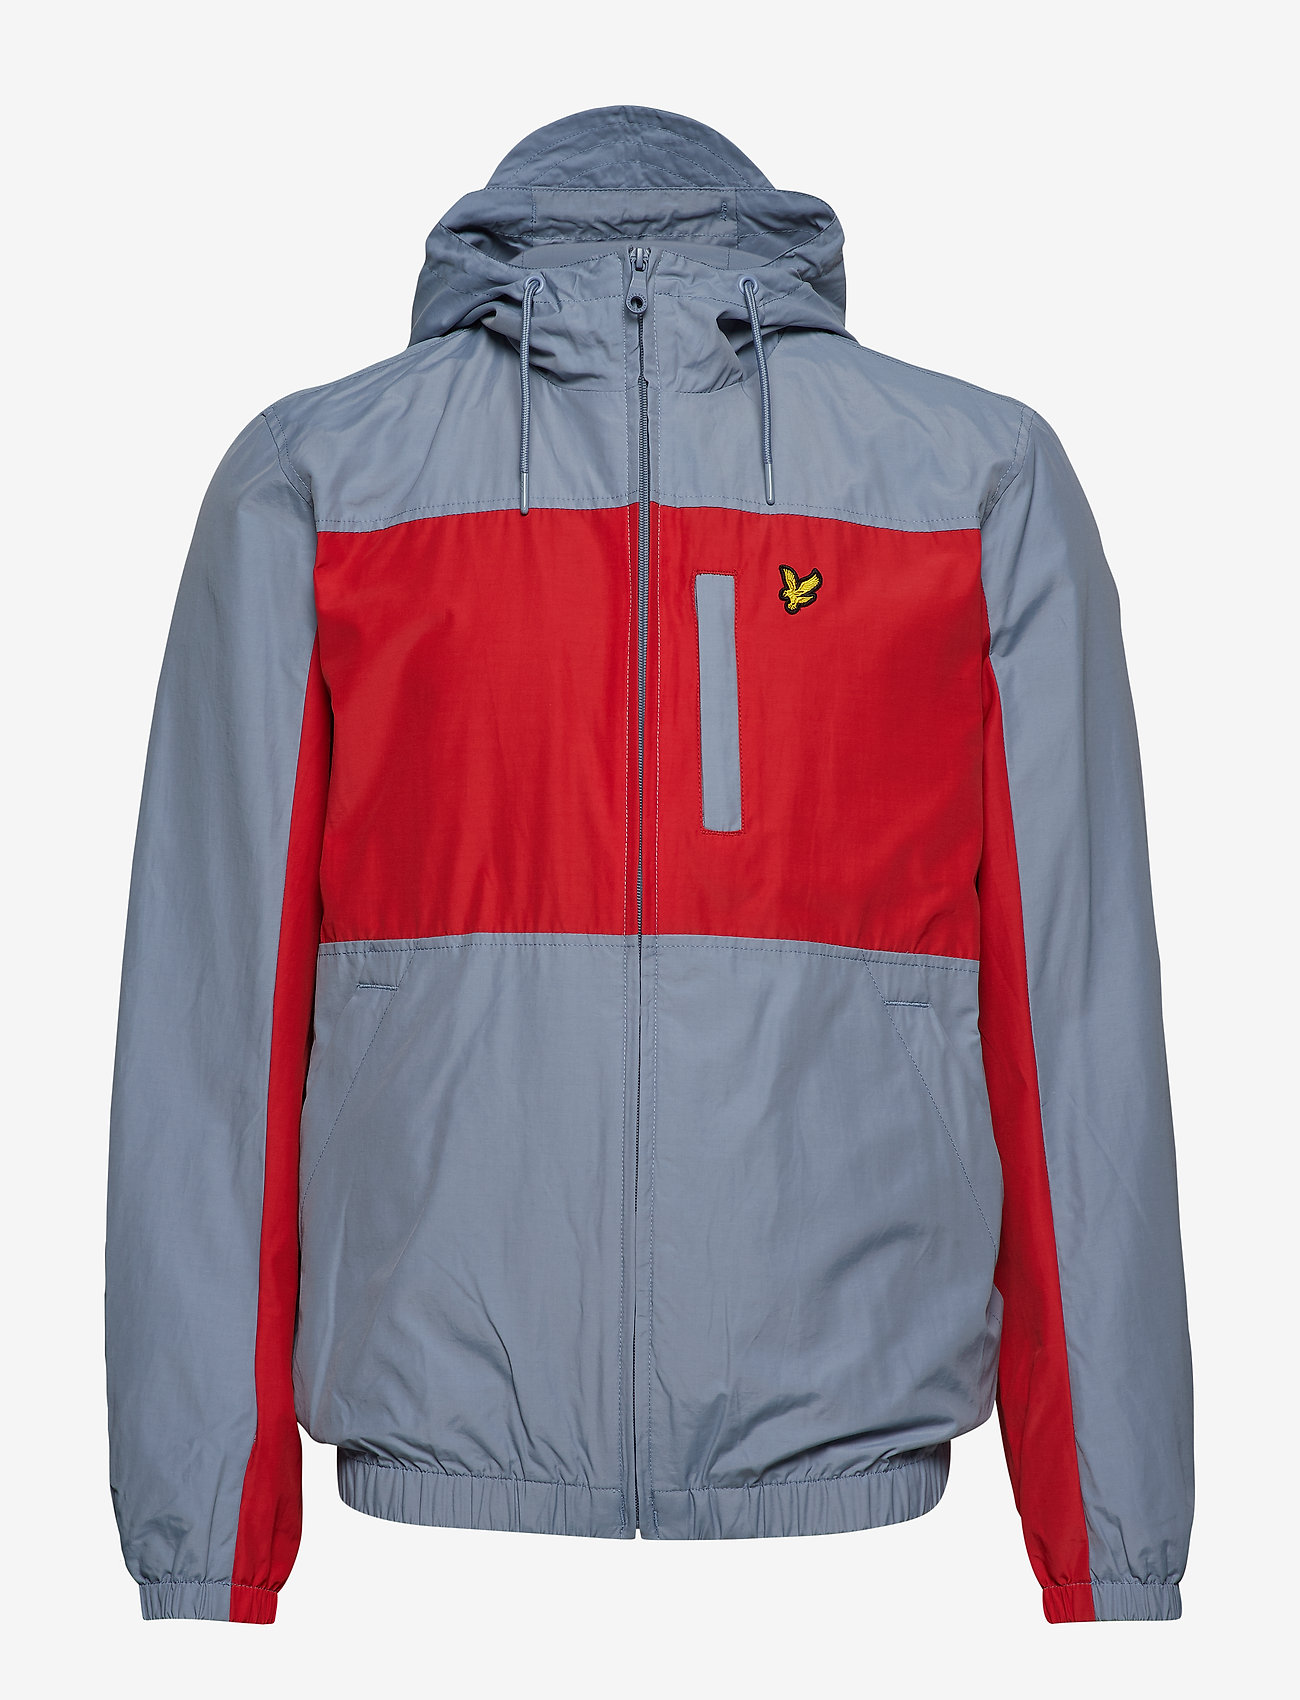 Colour Block Zip Through Jacket (Stone Blue) (48 €) - Lyle & Scott 1dbQd